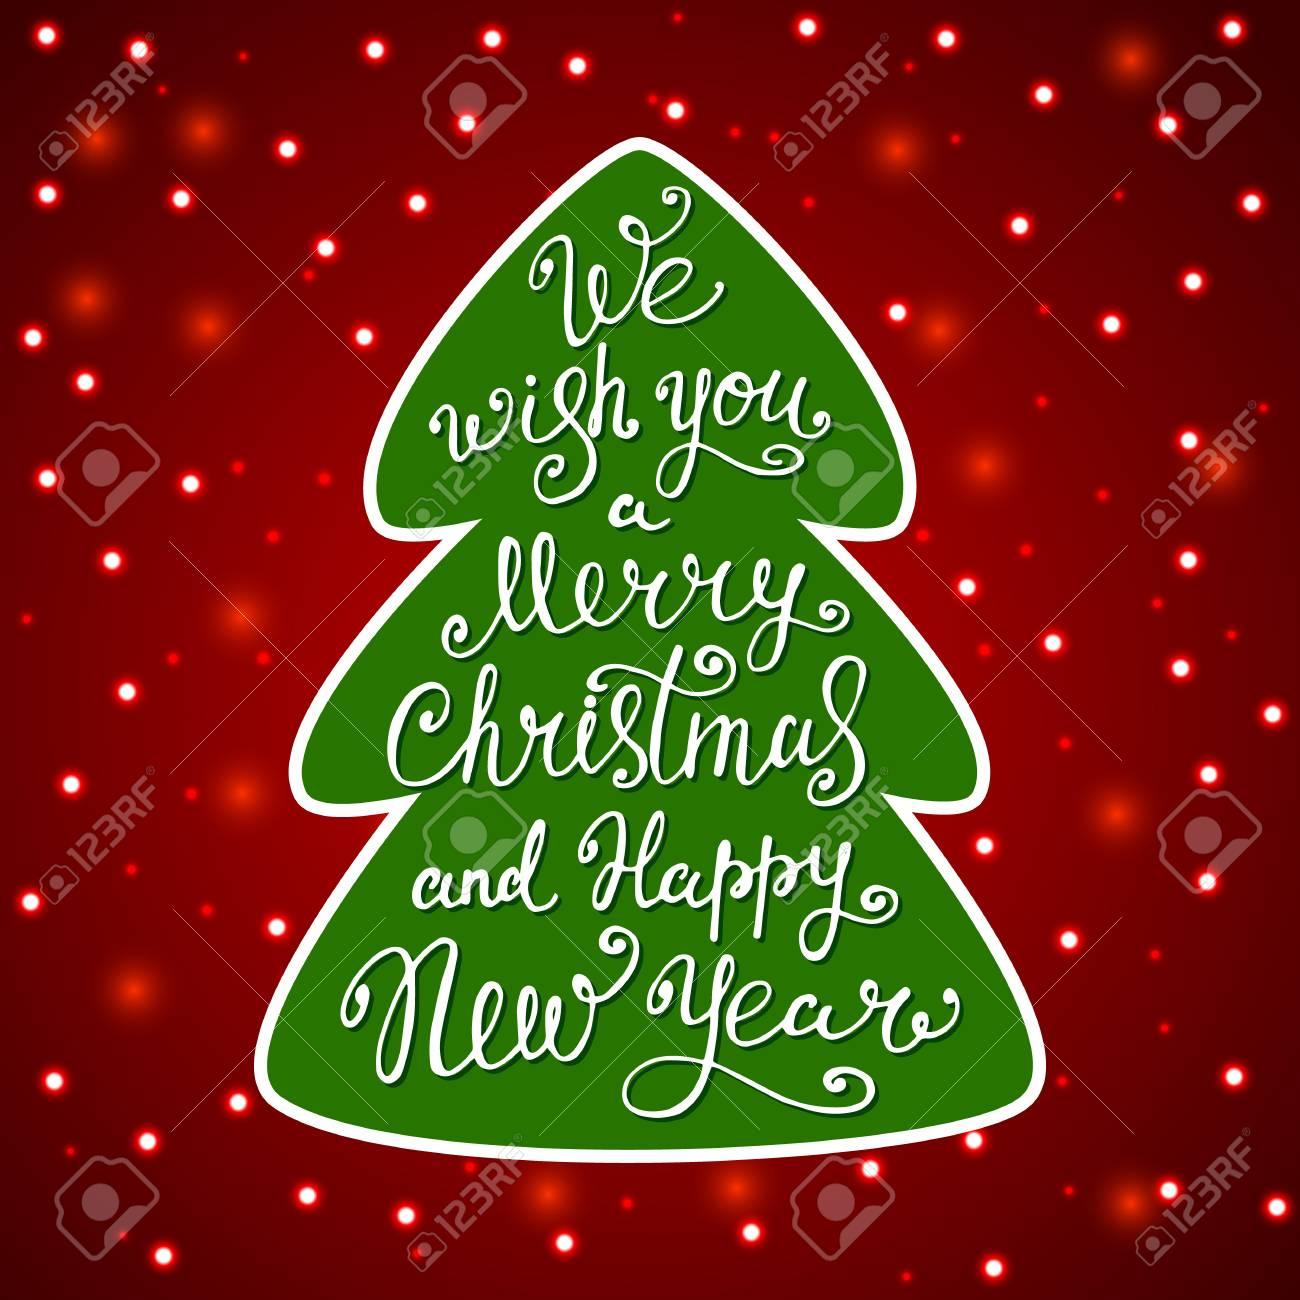 vector we wish you a merry christmas and happy new year in a christmas tree on red background with bokeh light lettering illustration